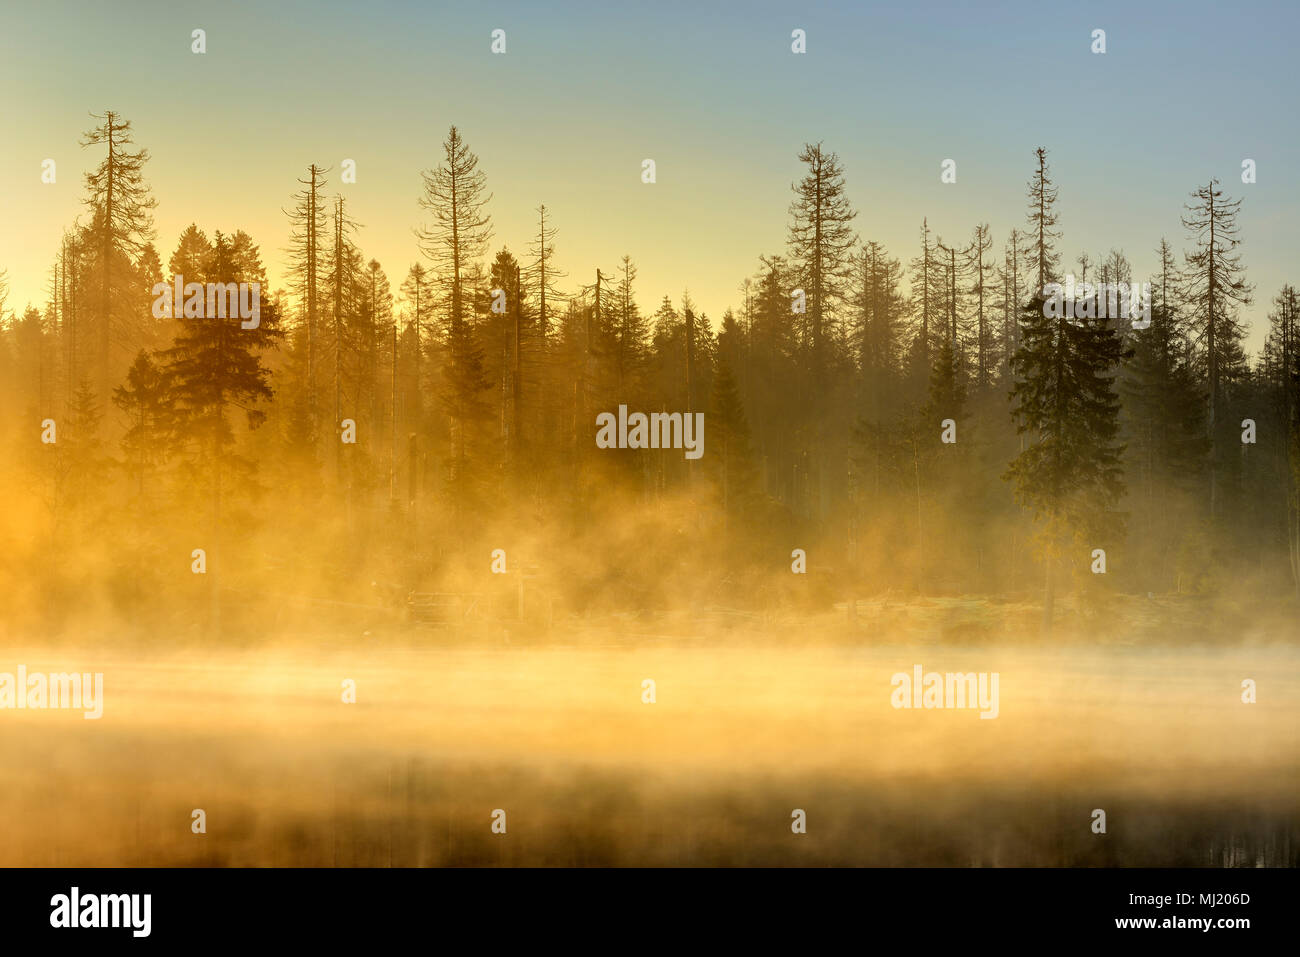 Sunrise at the Oder pond with morning mist, natural forest, spruces partly dead due to bark beetle infestation - Stock Image